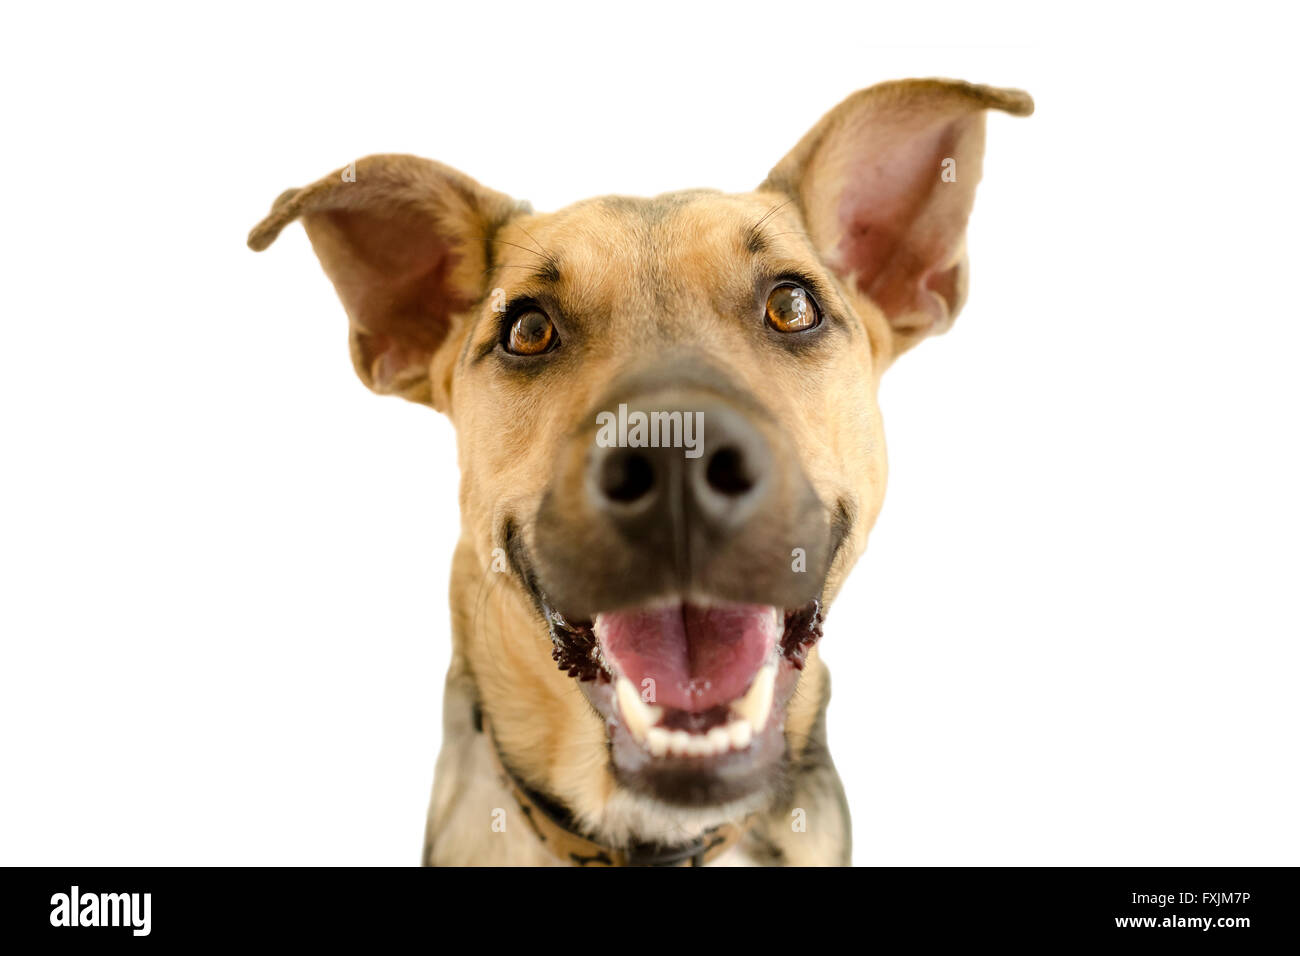 Hapy Dog Isolated On White Is A Cute Funny Enthusiastic German Stock